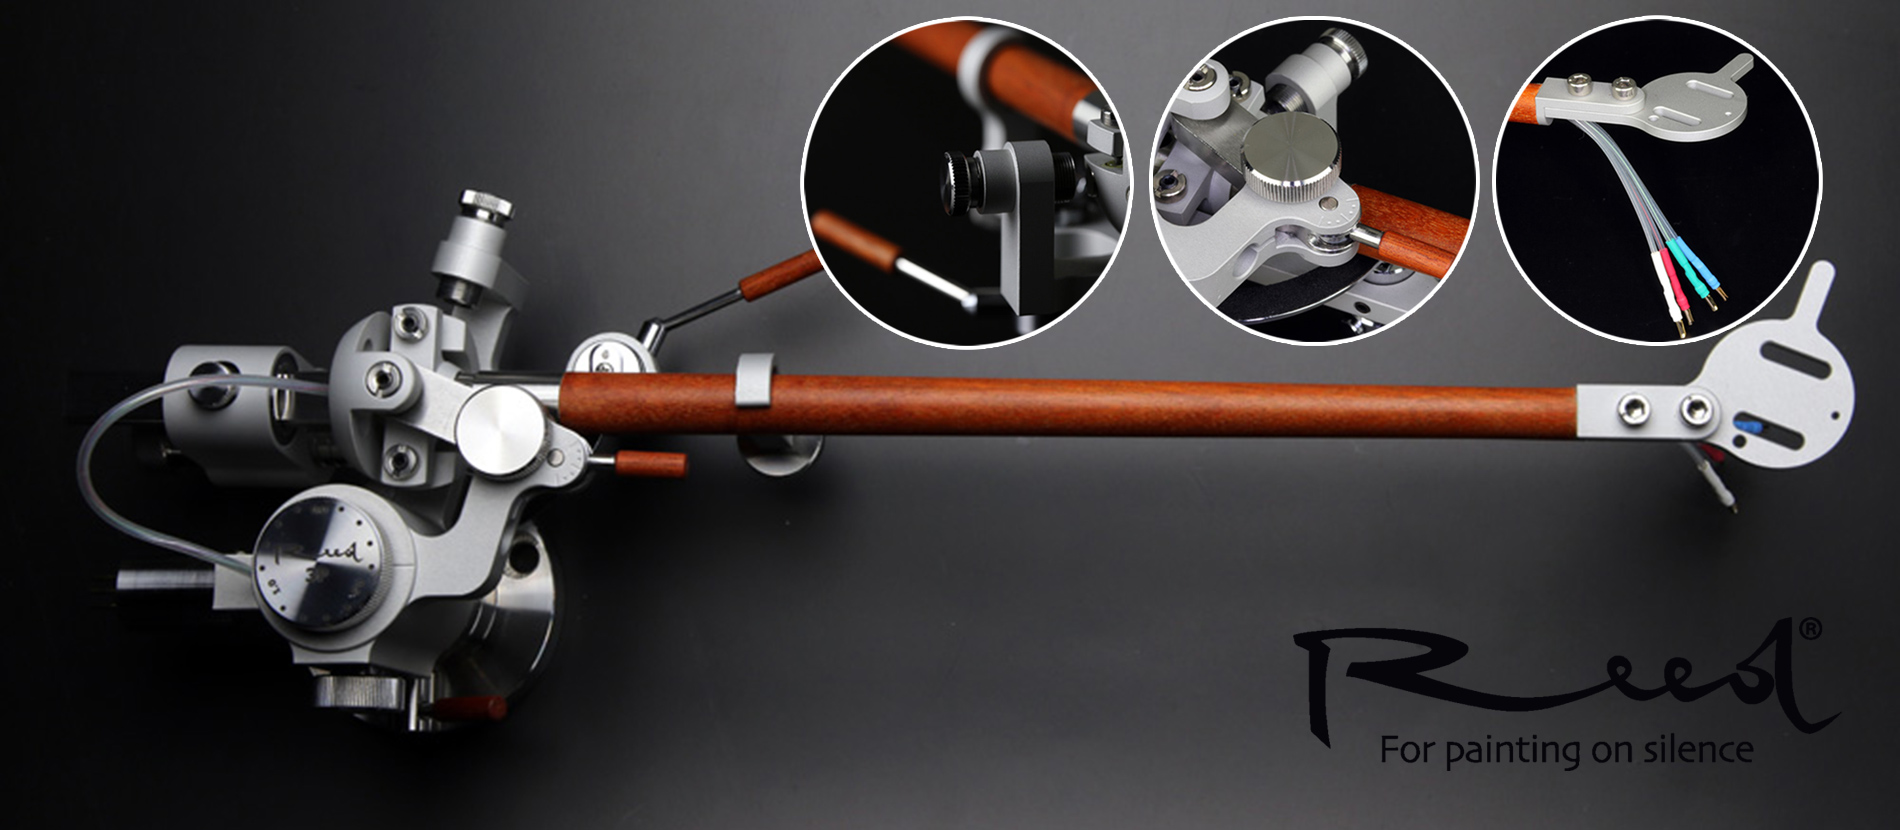 Reed turntables - tonearms